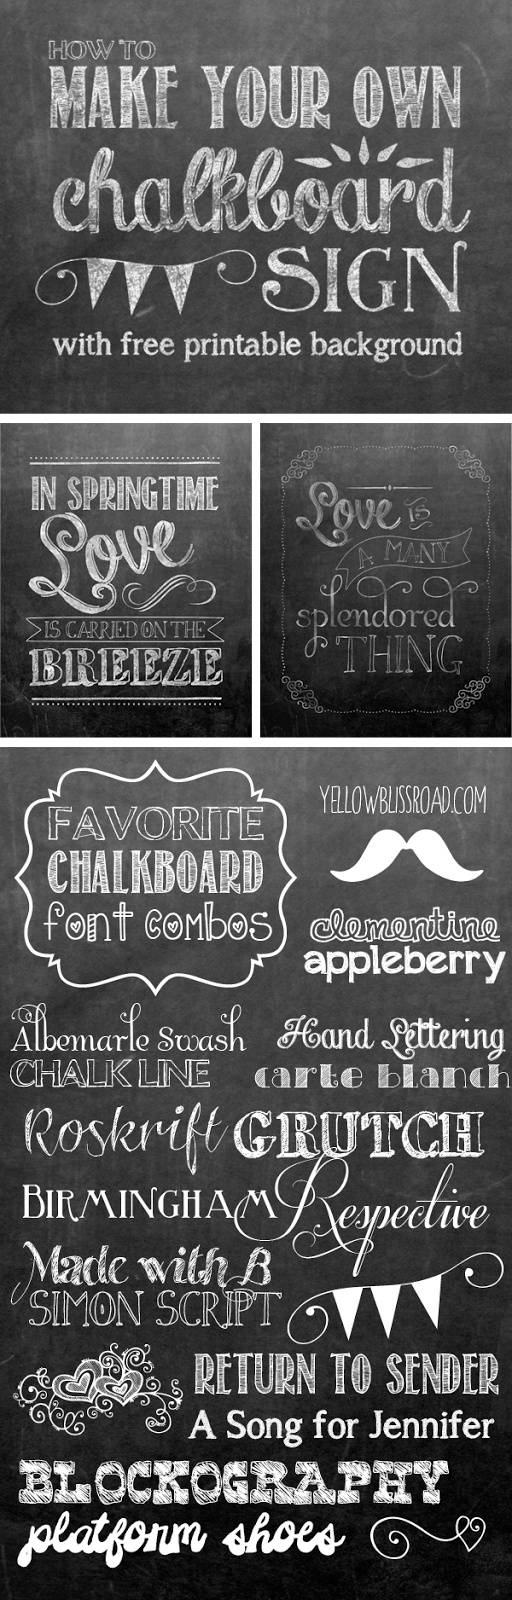 Tips For Making Your Own Chalkboard Sign Chalkboard Font Combos And A Free Printable Background Http P Chalkboard Fonts Chalkboard Lettering Chalkboard